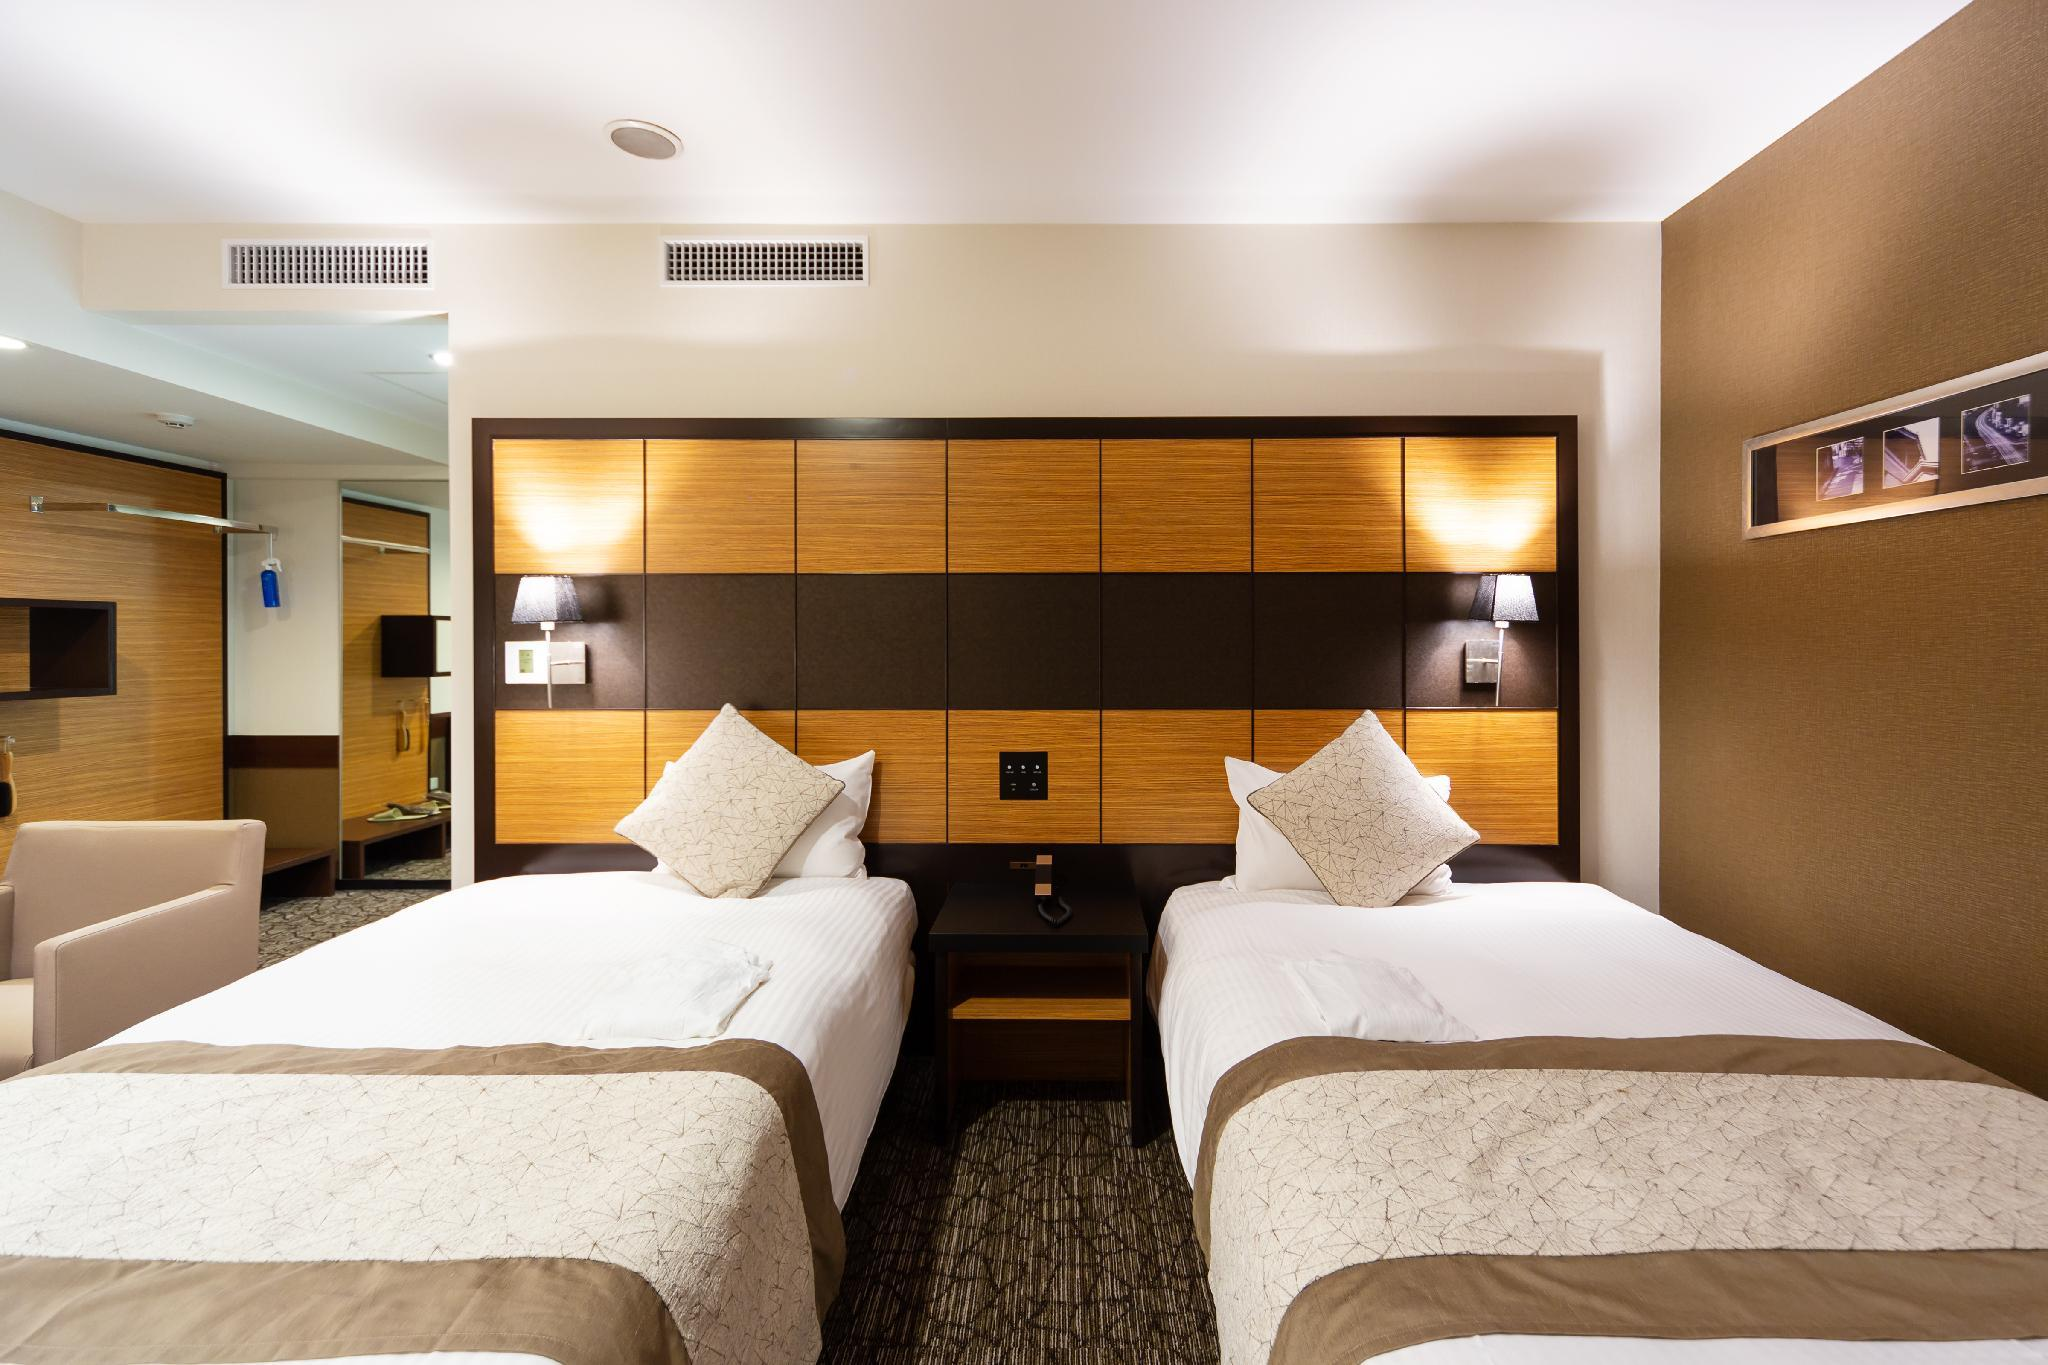 Kamar Executive Twin dengan Ranjang Tambahan – Bebas Asap Rokok (Executive Twin Room with Extra Bed - Non-Smoking)